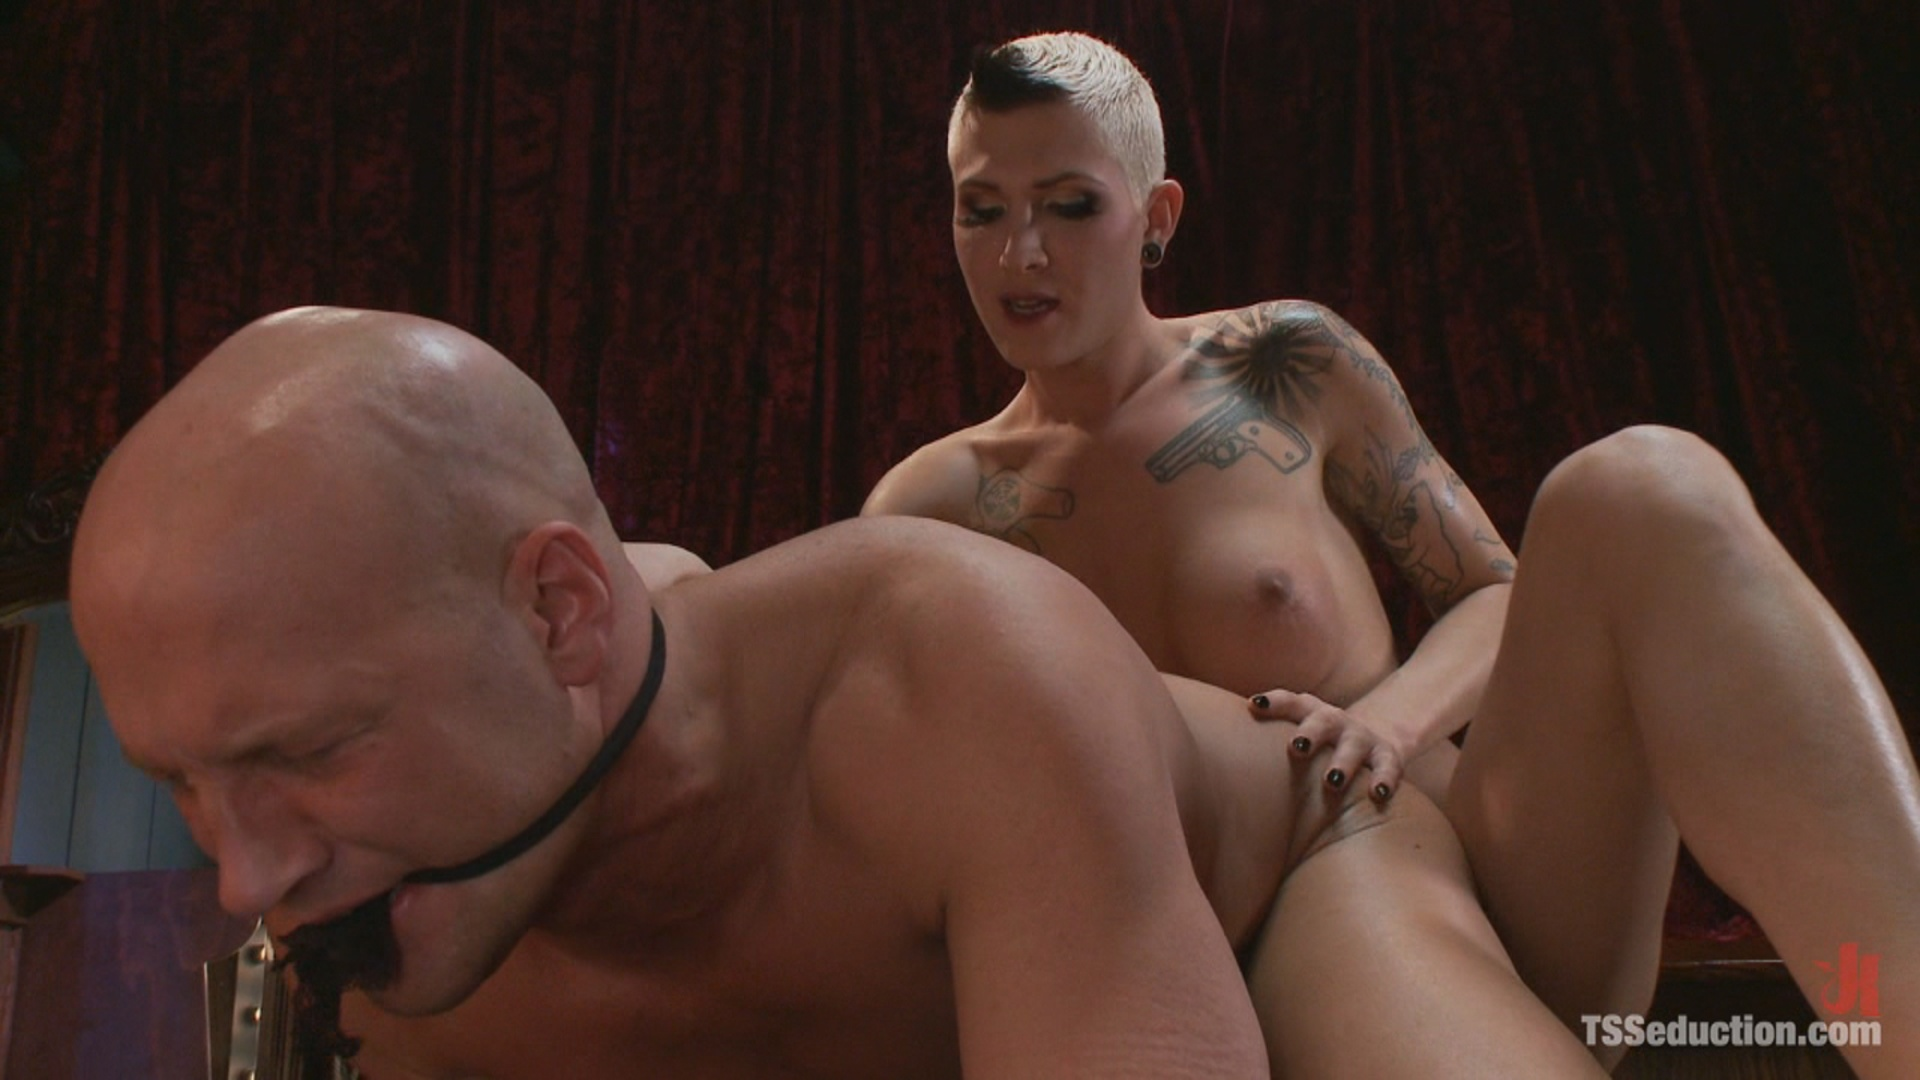 TS Seduction:  Cabaret:  TS Danni Daniels Owns Christian xvideos